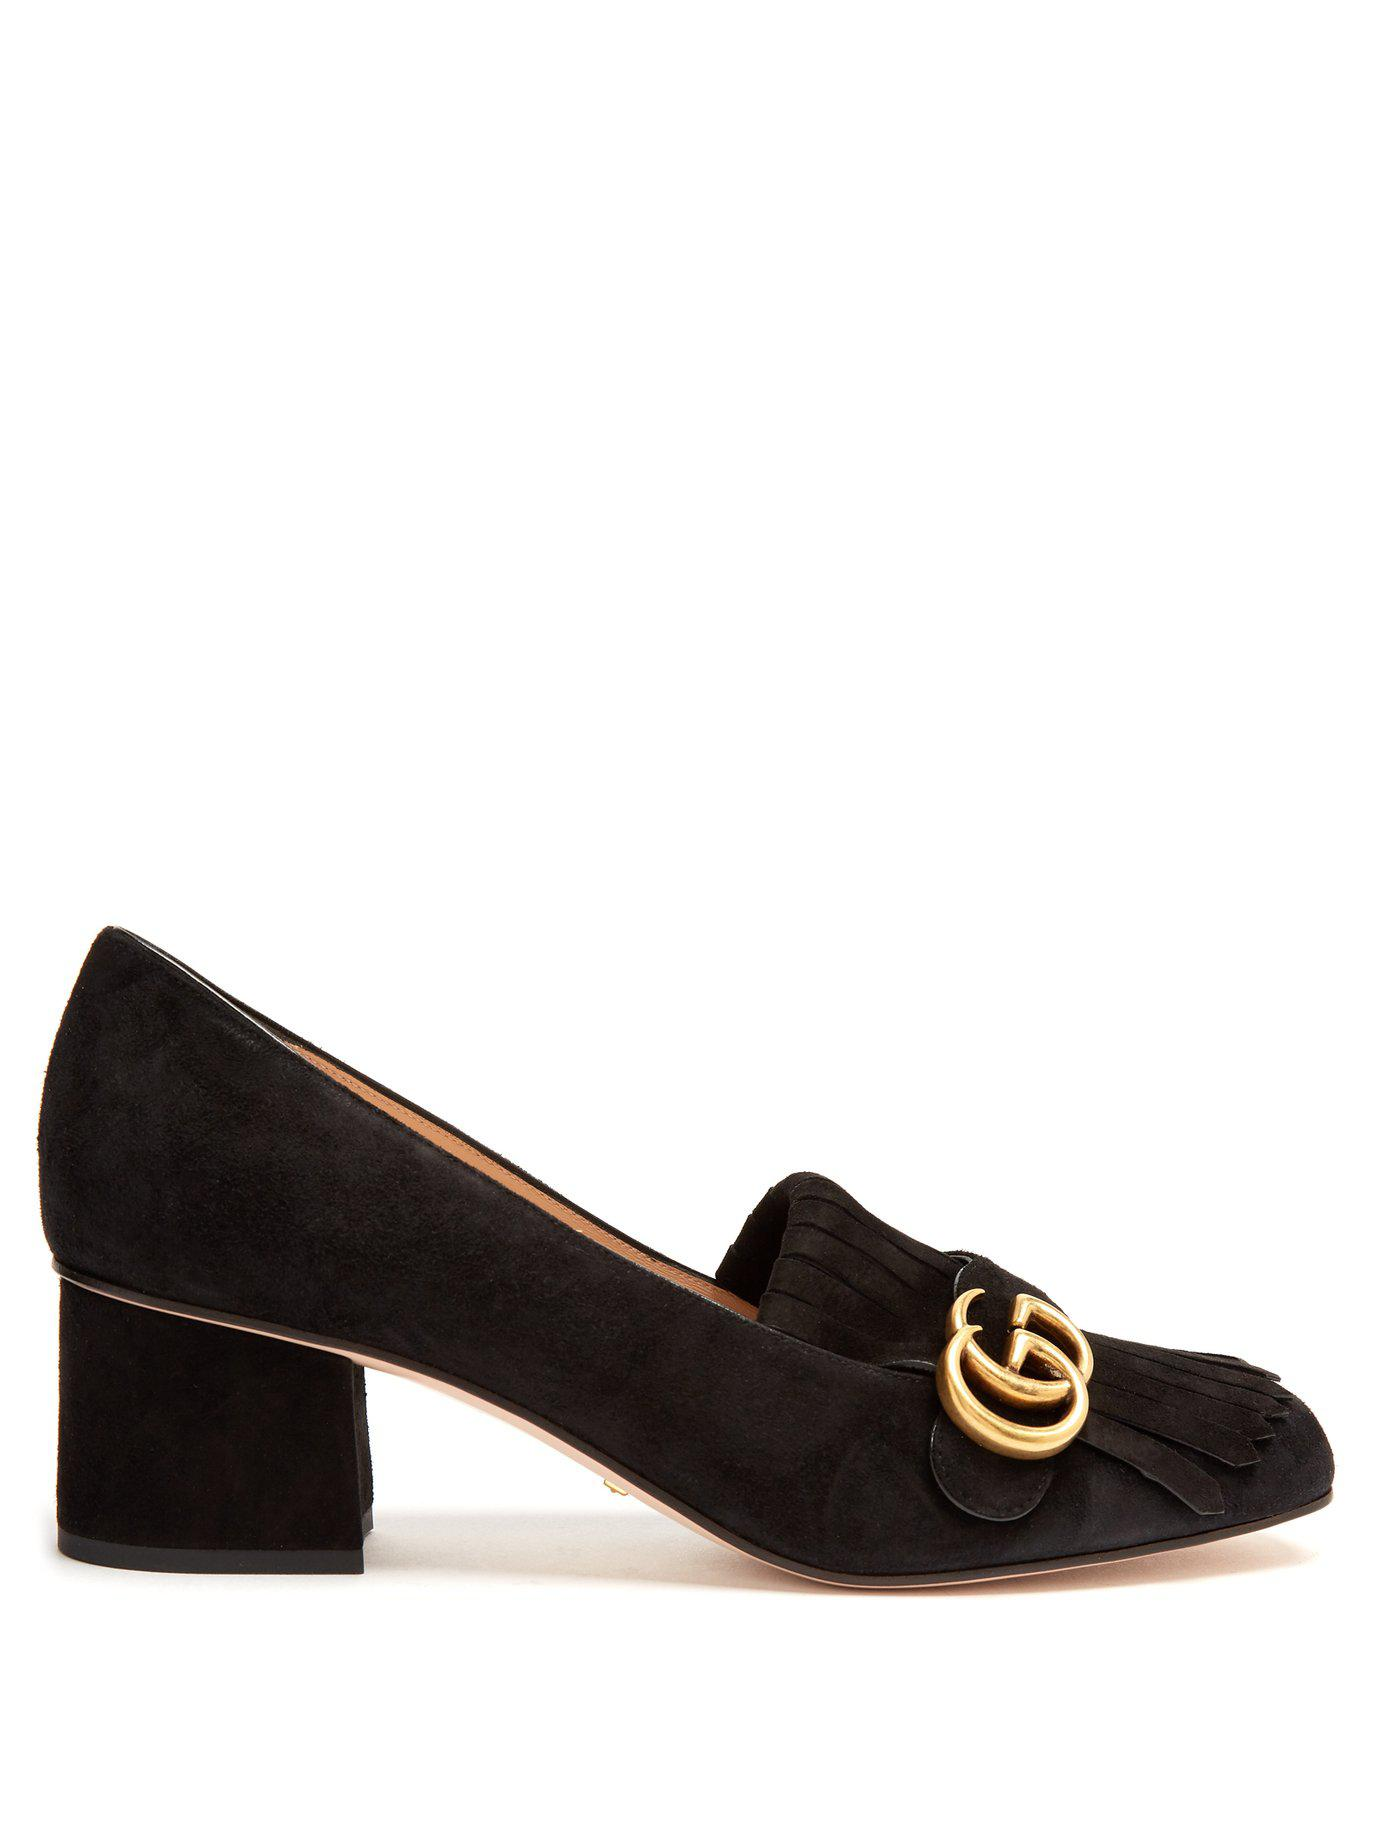 007be9d86 Gucci Marmont Fringed Suede Loafers in Black - Save 5% - Lyst